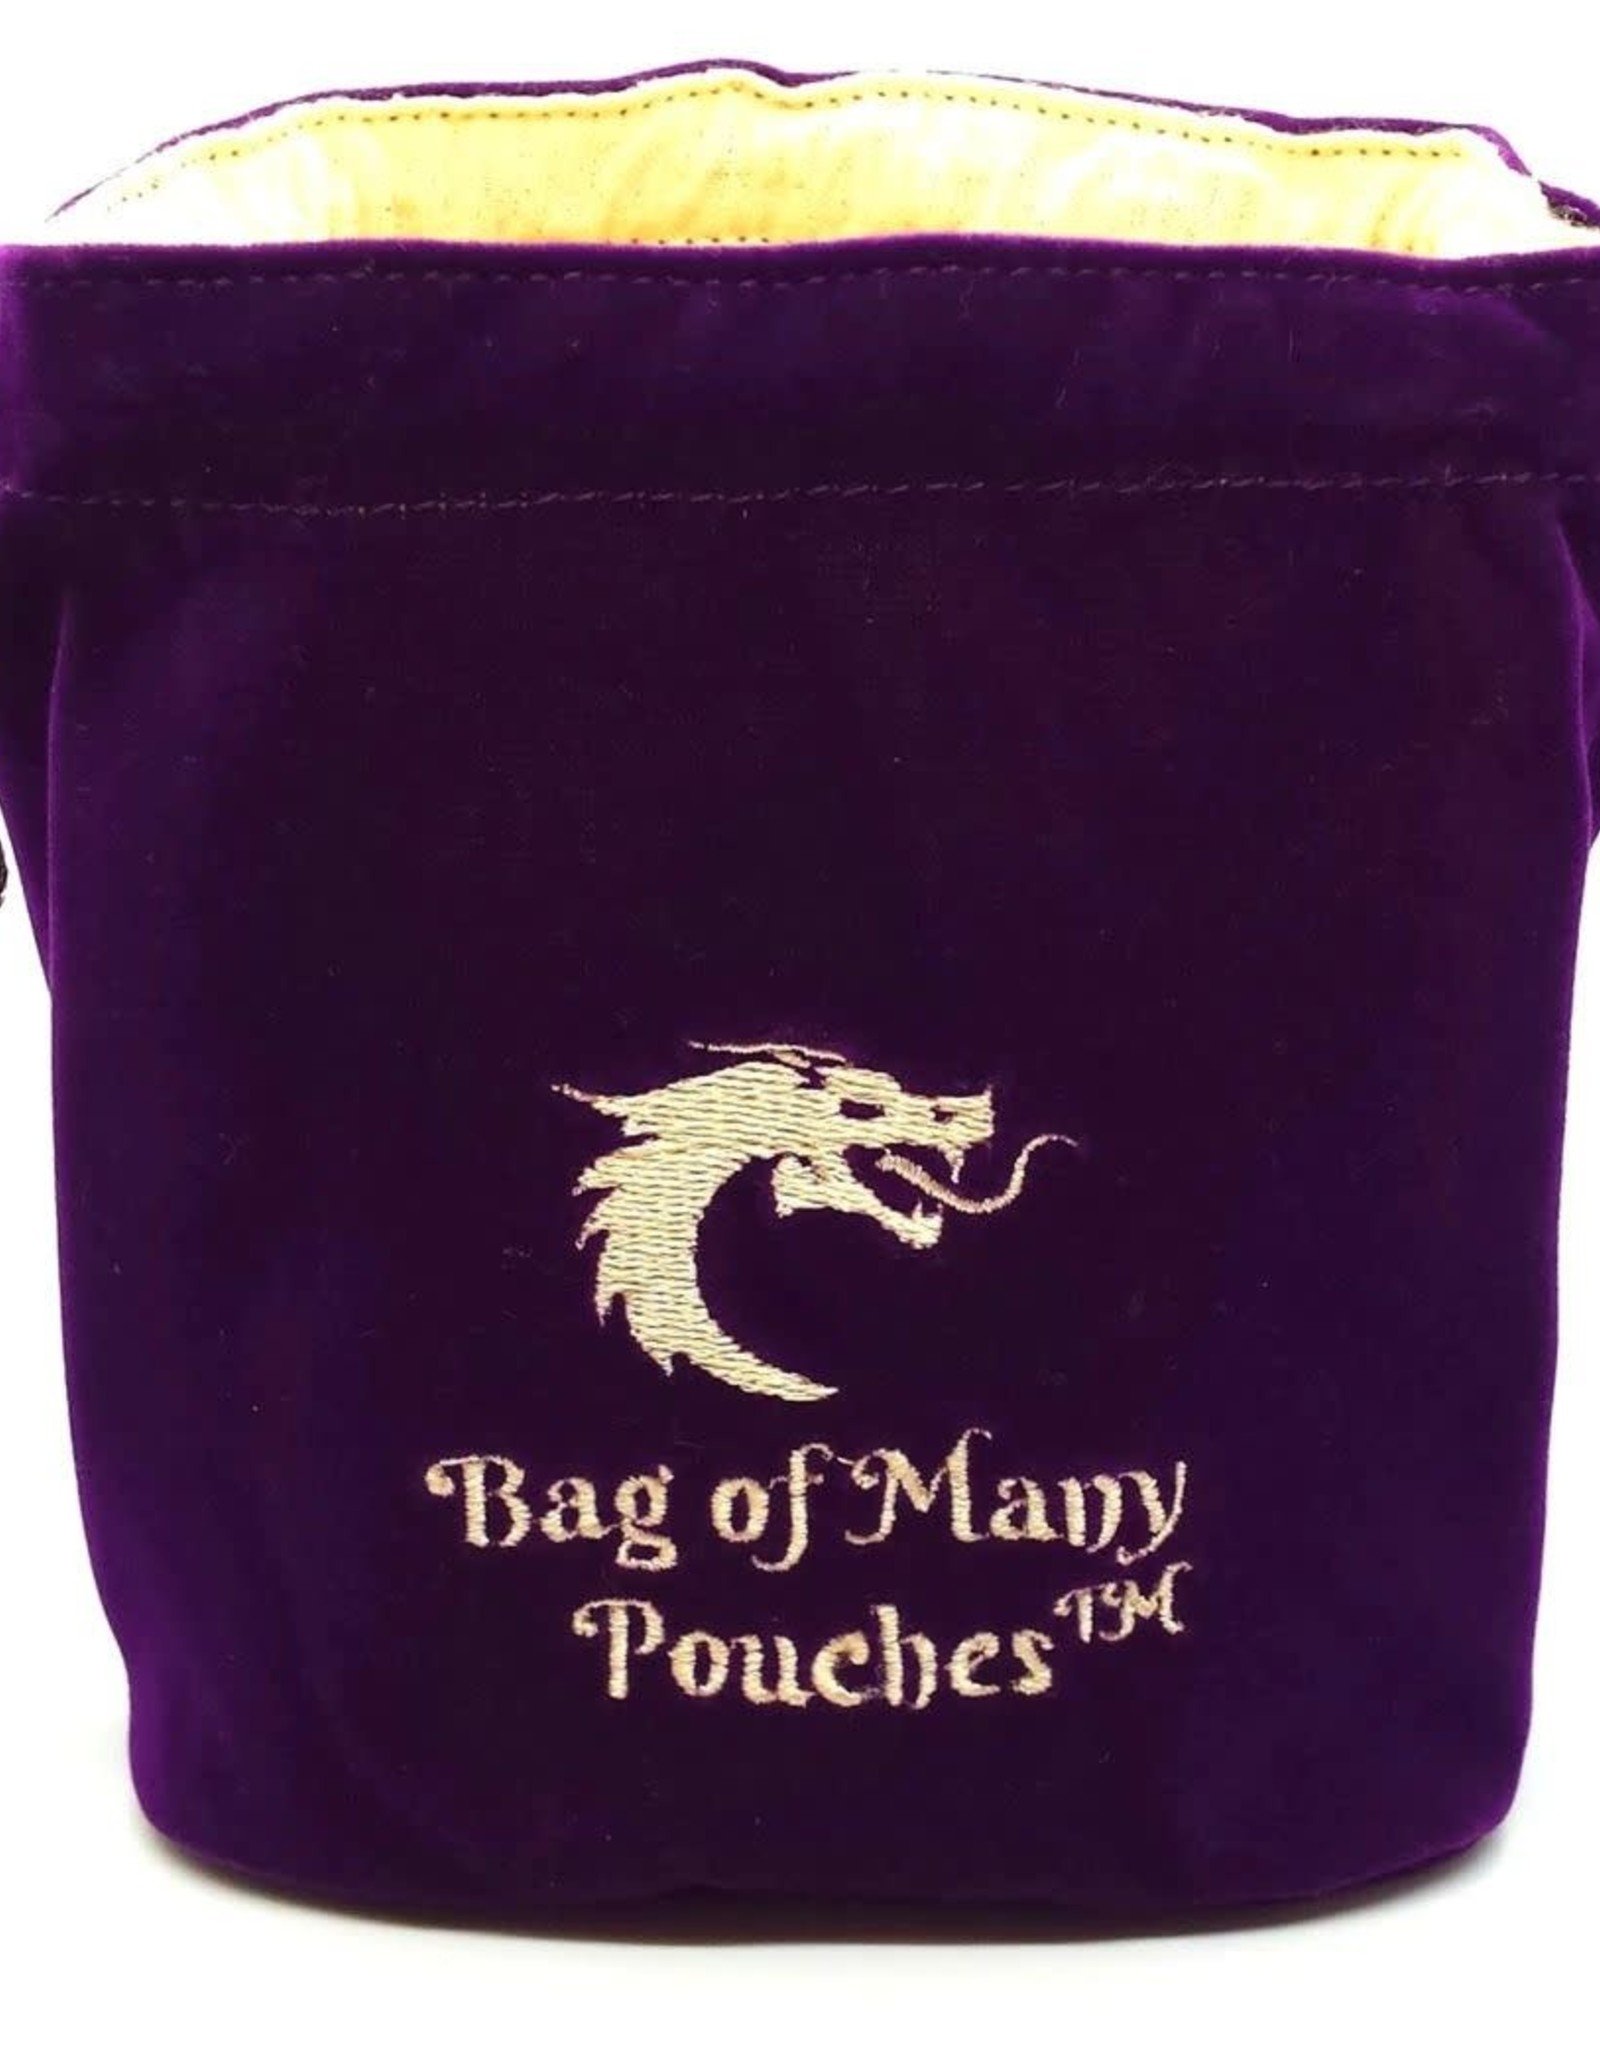 Bag of Many Pouches Bag of Many Pouches - Purple